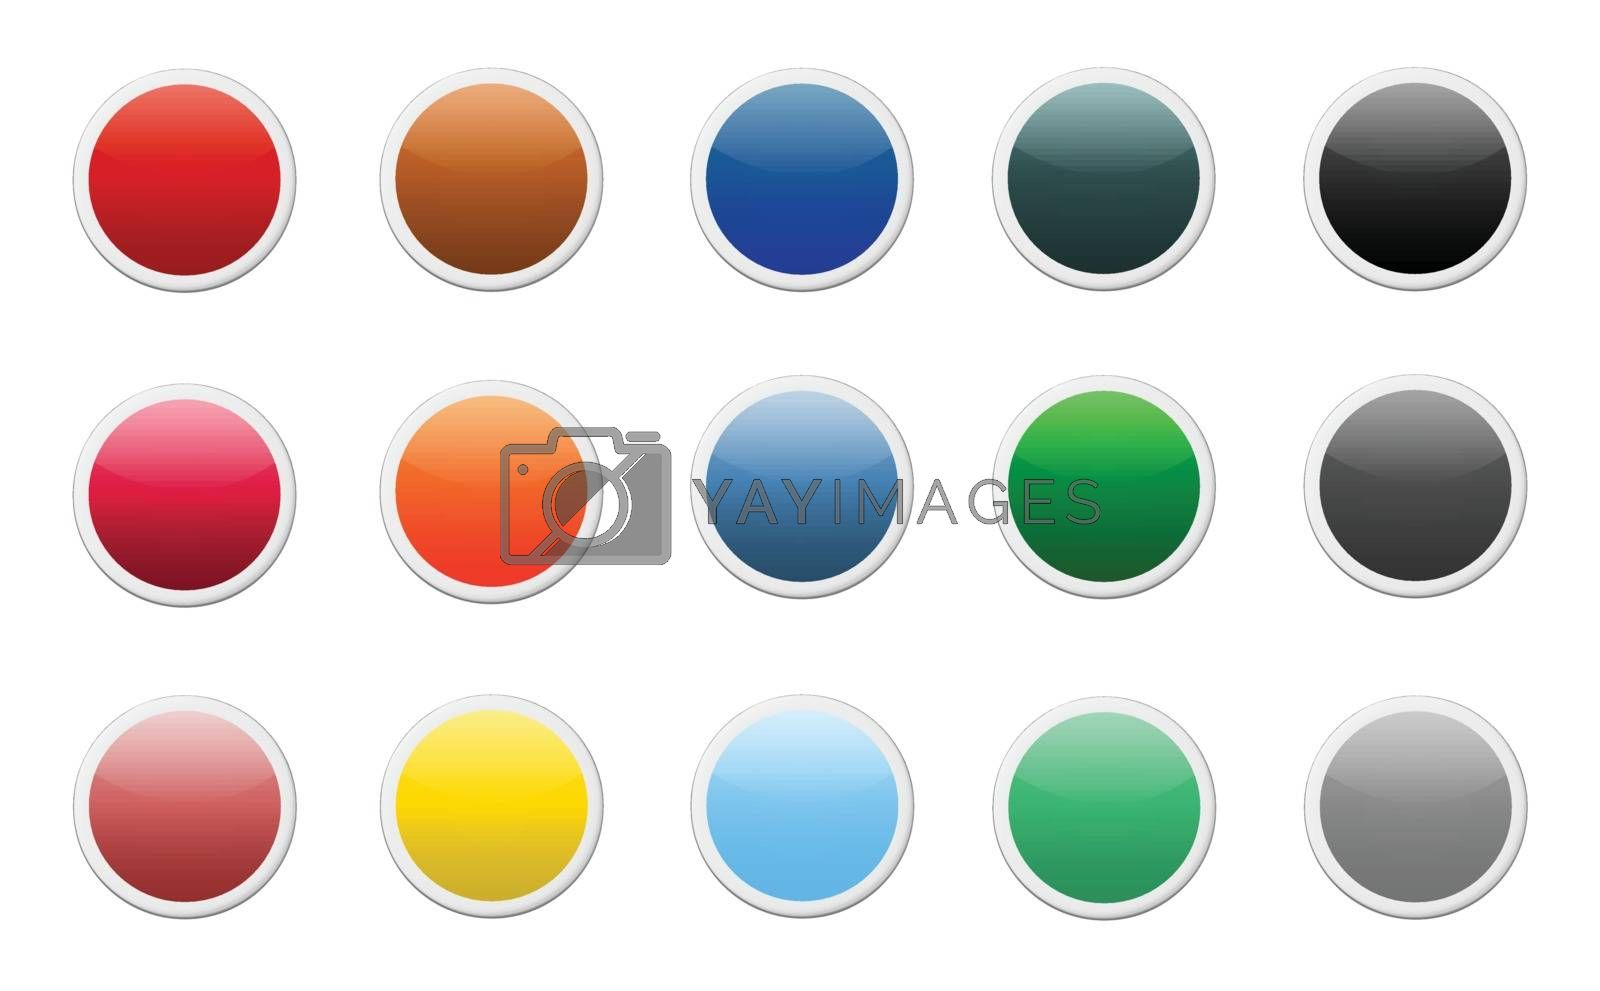 Royalty free image of Set of colored round buttons by doraclub